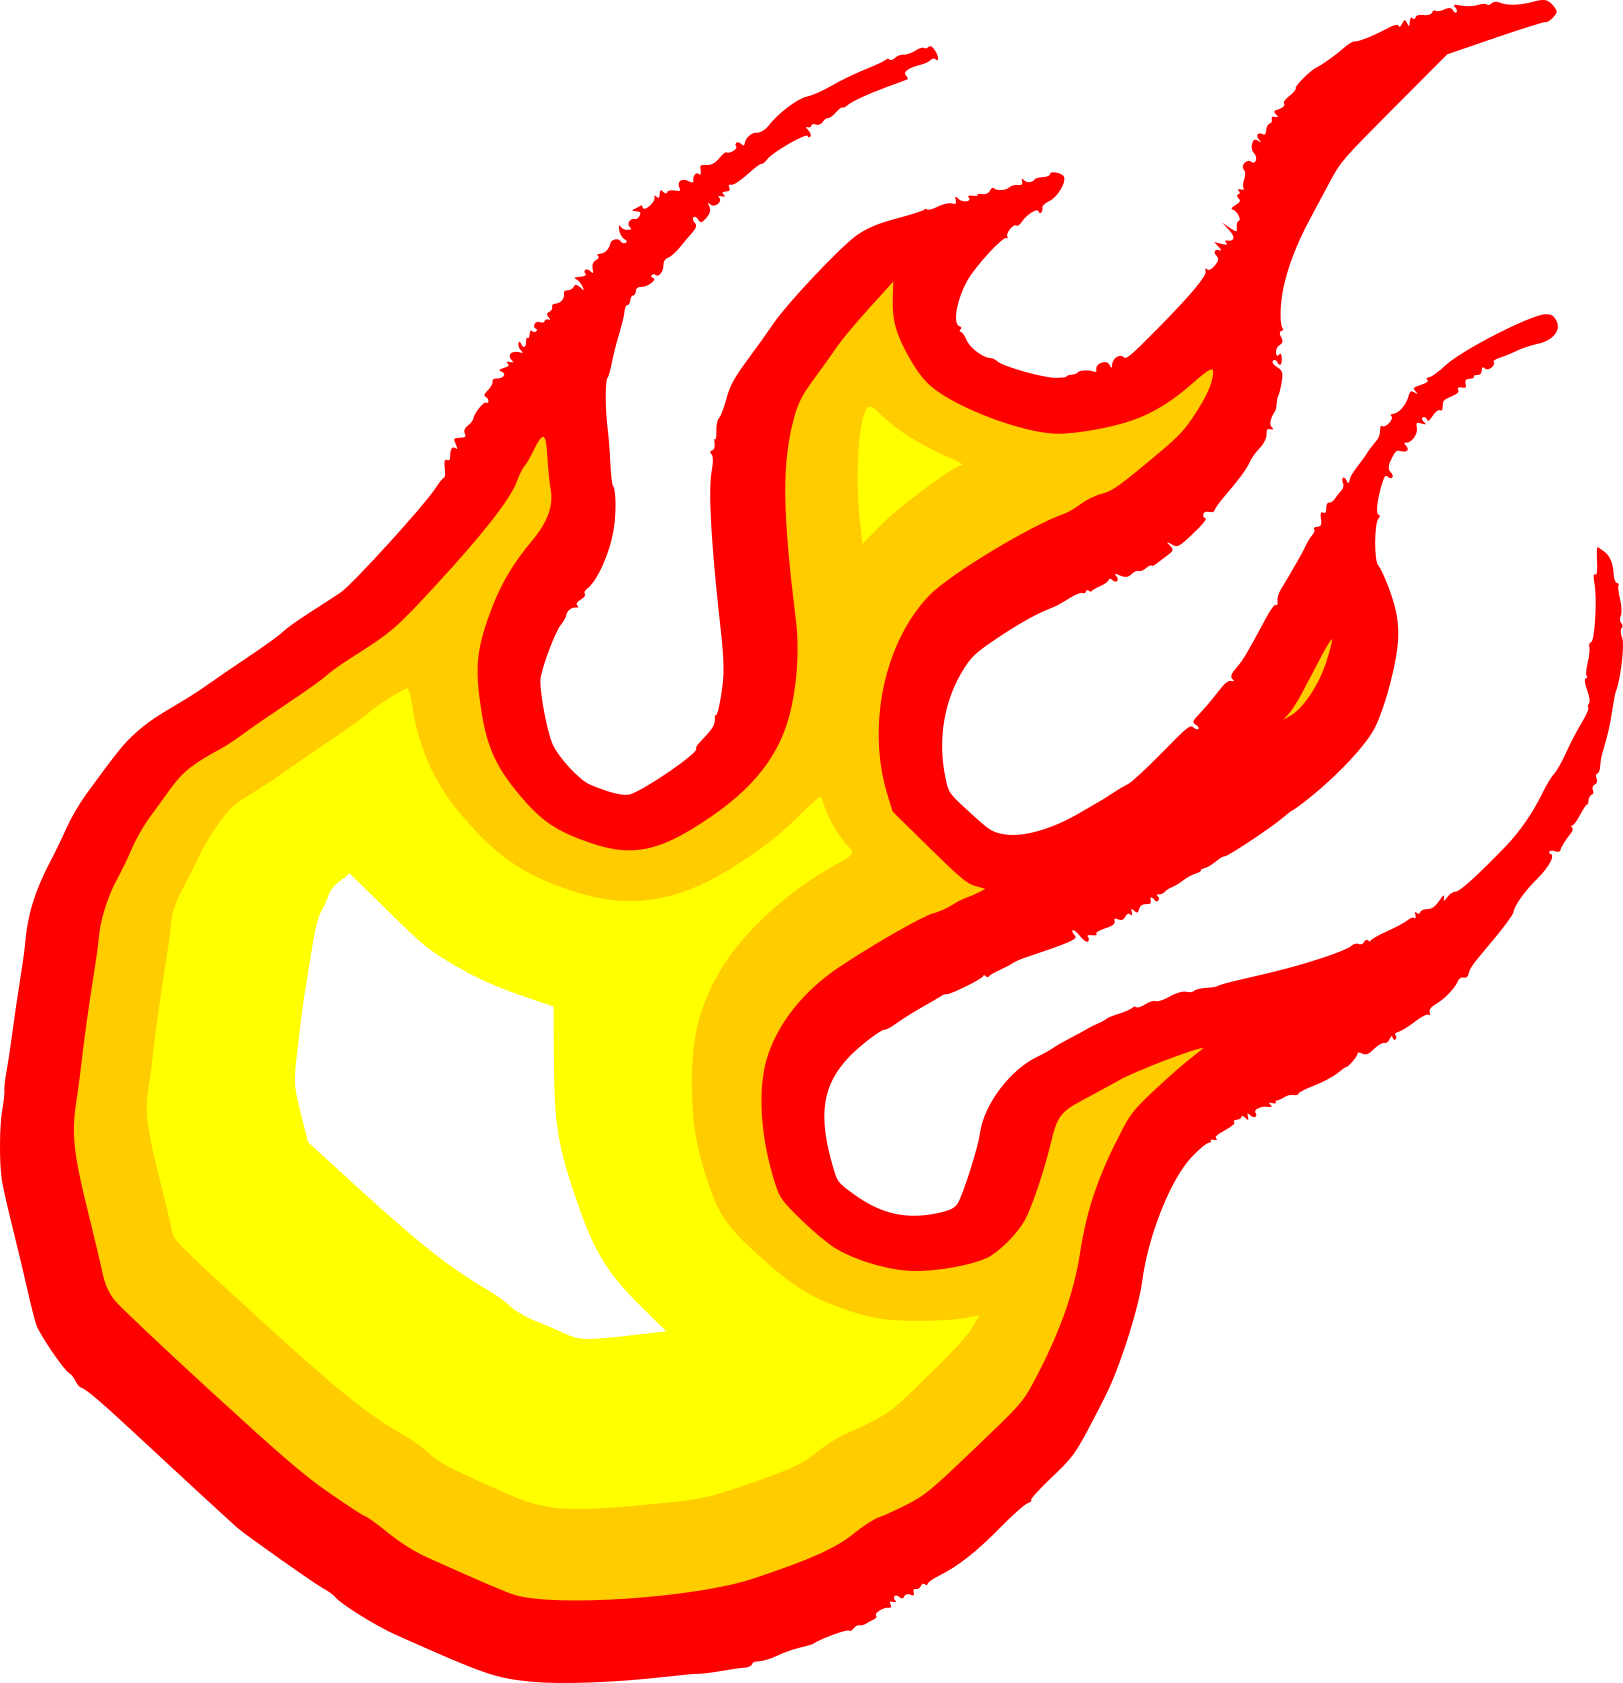 6-cartoon-fire-flame-elements-vector-1.png